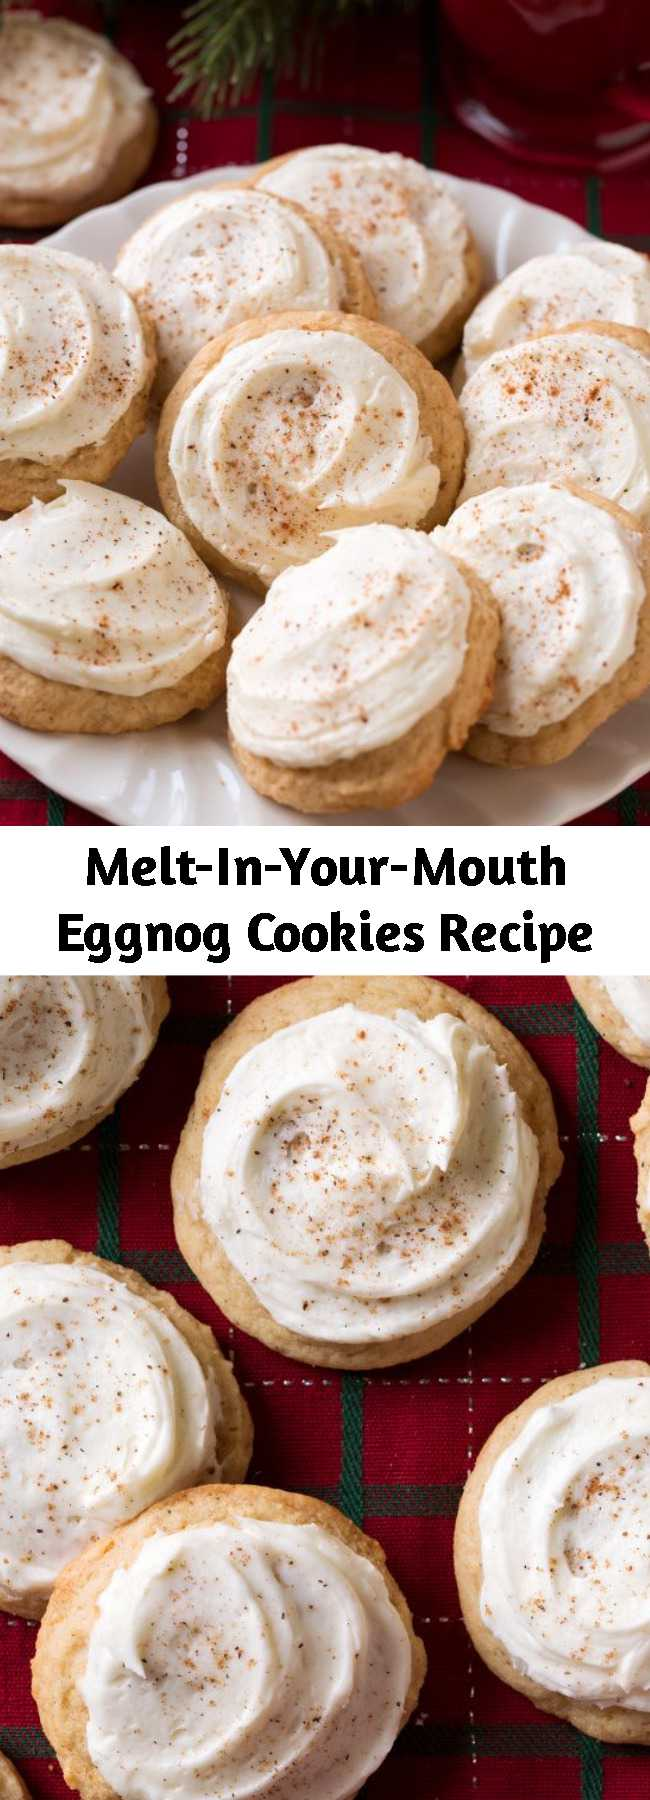 Melt-In-Your-Mouth Eggnog Cookies Recipe - With their tender cake-like texture and generous coating of eggnog frosting they are likely to become a new favorite holiday cookie! Once you try them you'll want to make them at least once every Christmas season. They're a soft and fluffy, cake-like cookie with a deliciously tender texture, the perfect amount of spice, and a rich eggnog frosting.